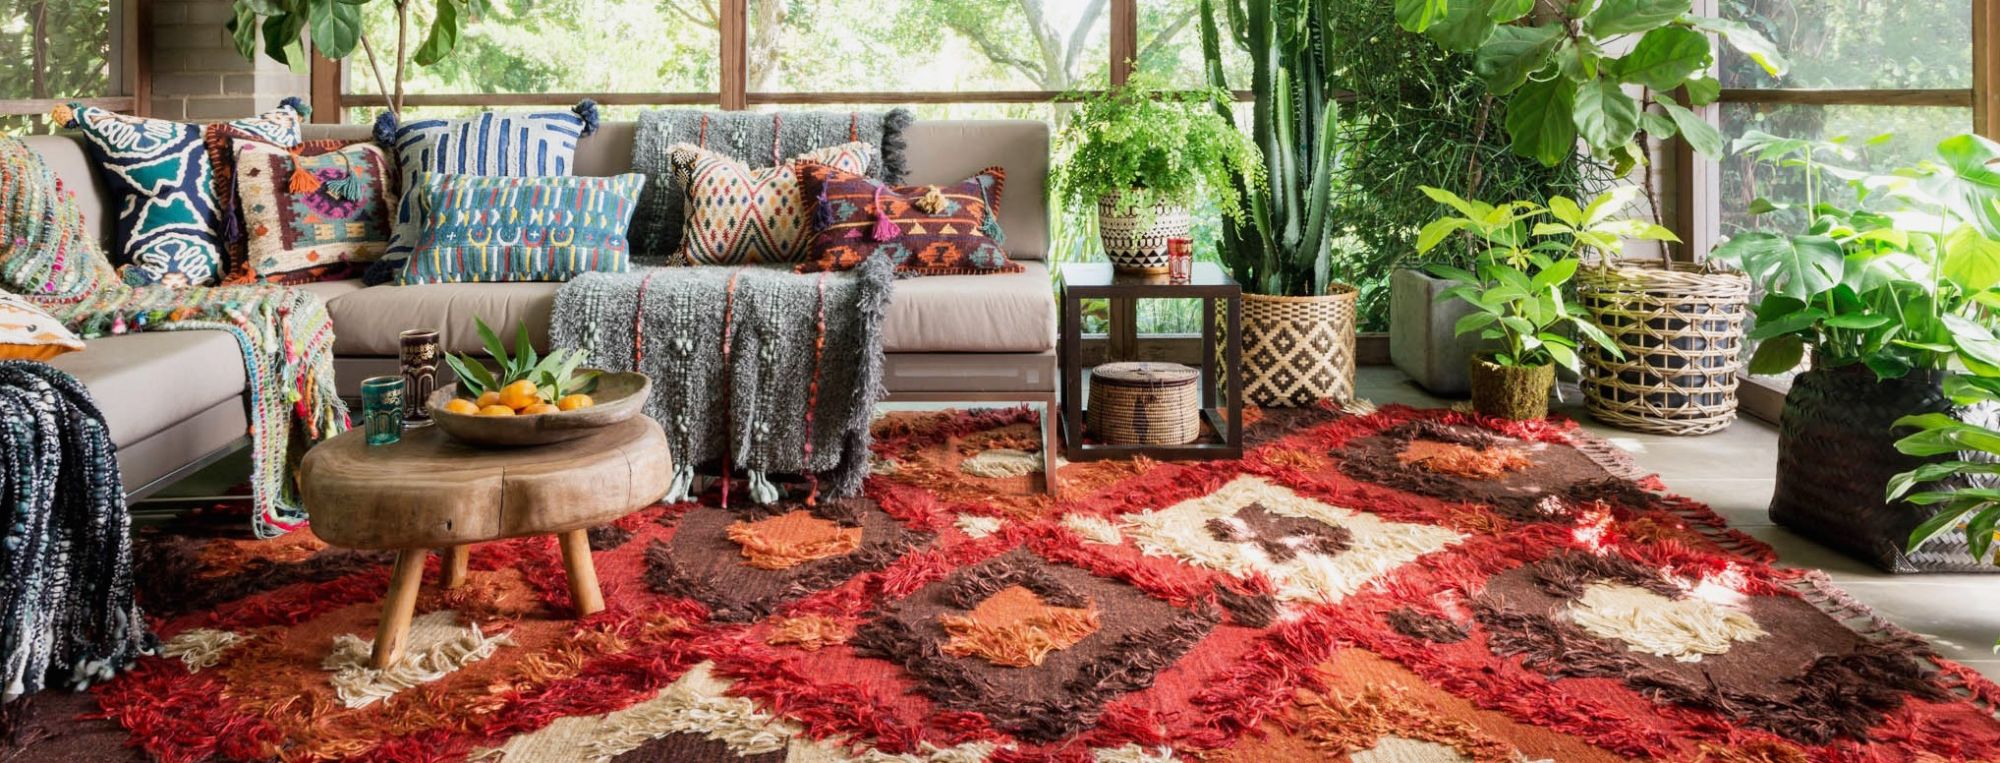 5 Tips For Buying The Perfect Moroccan Rug